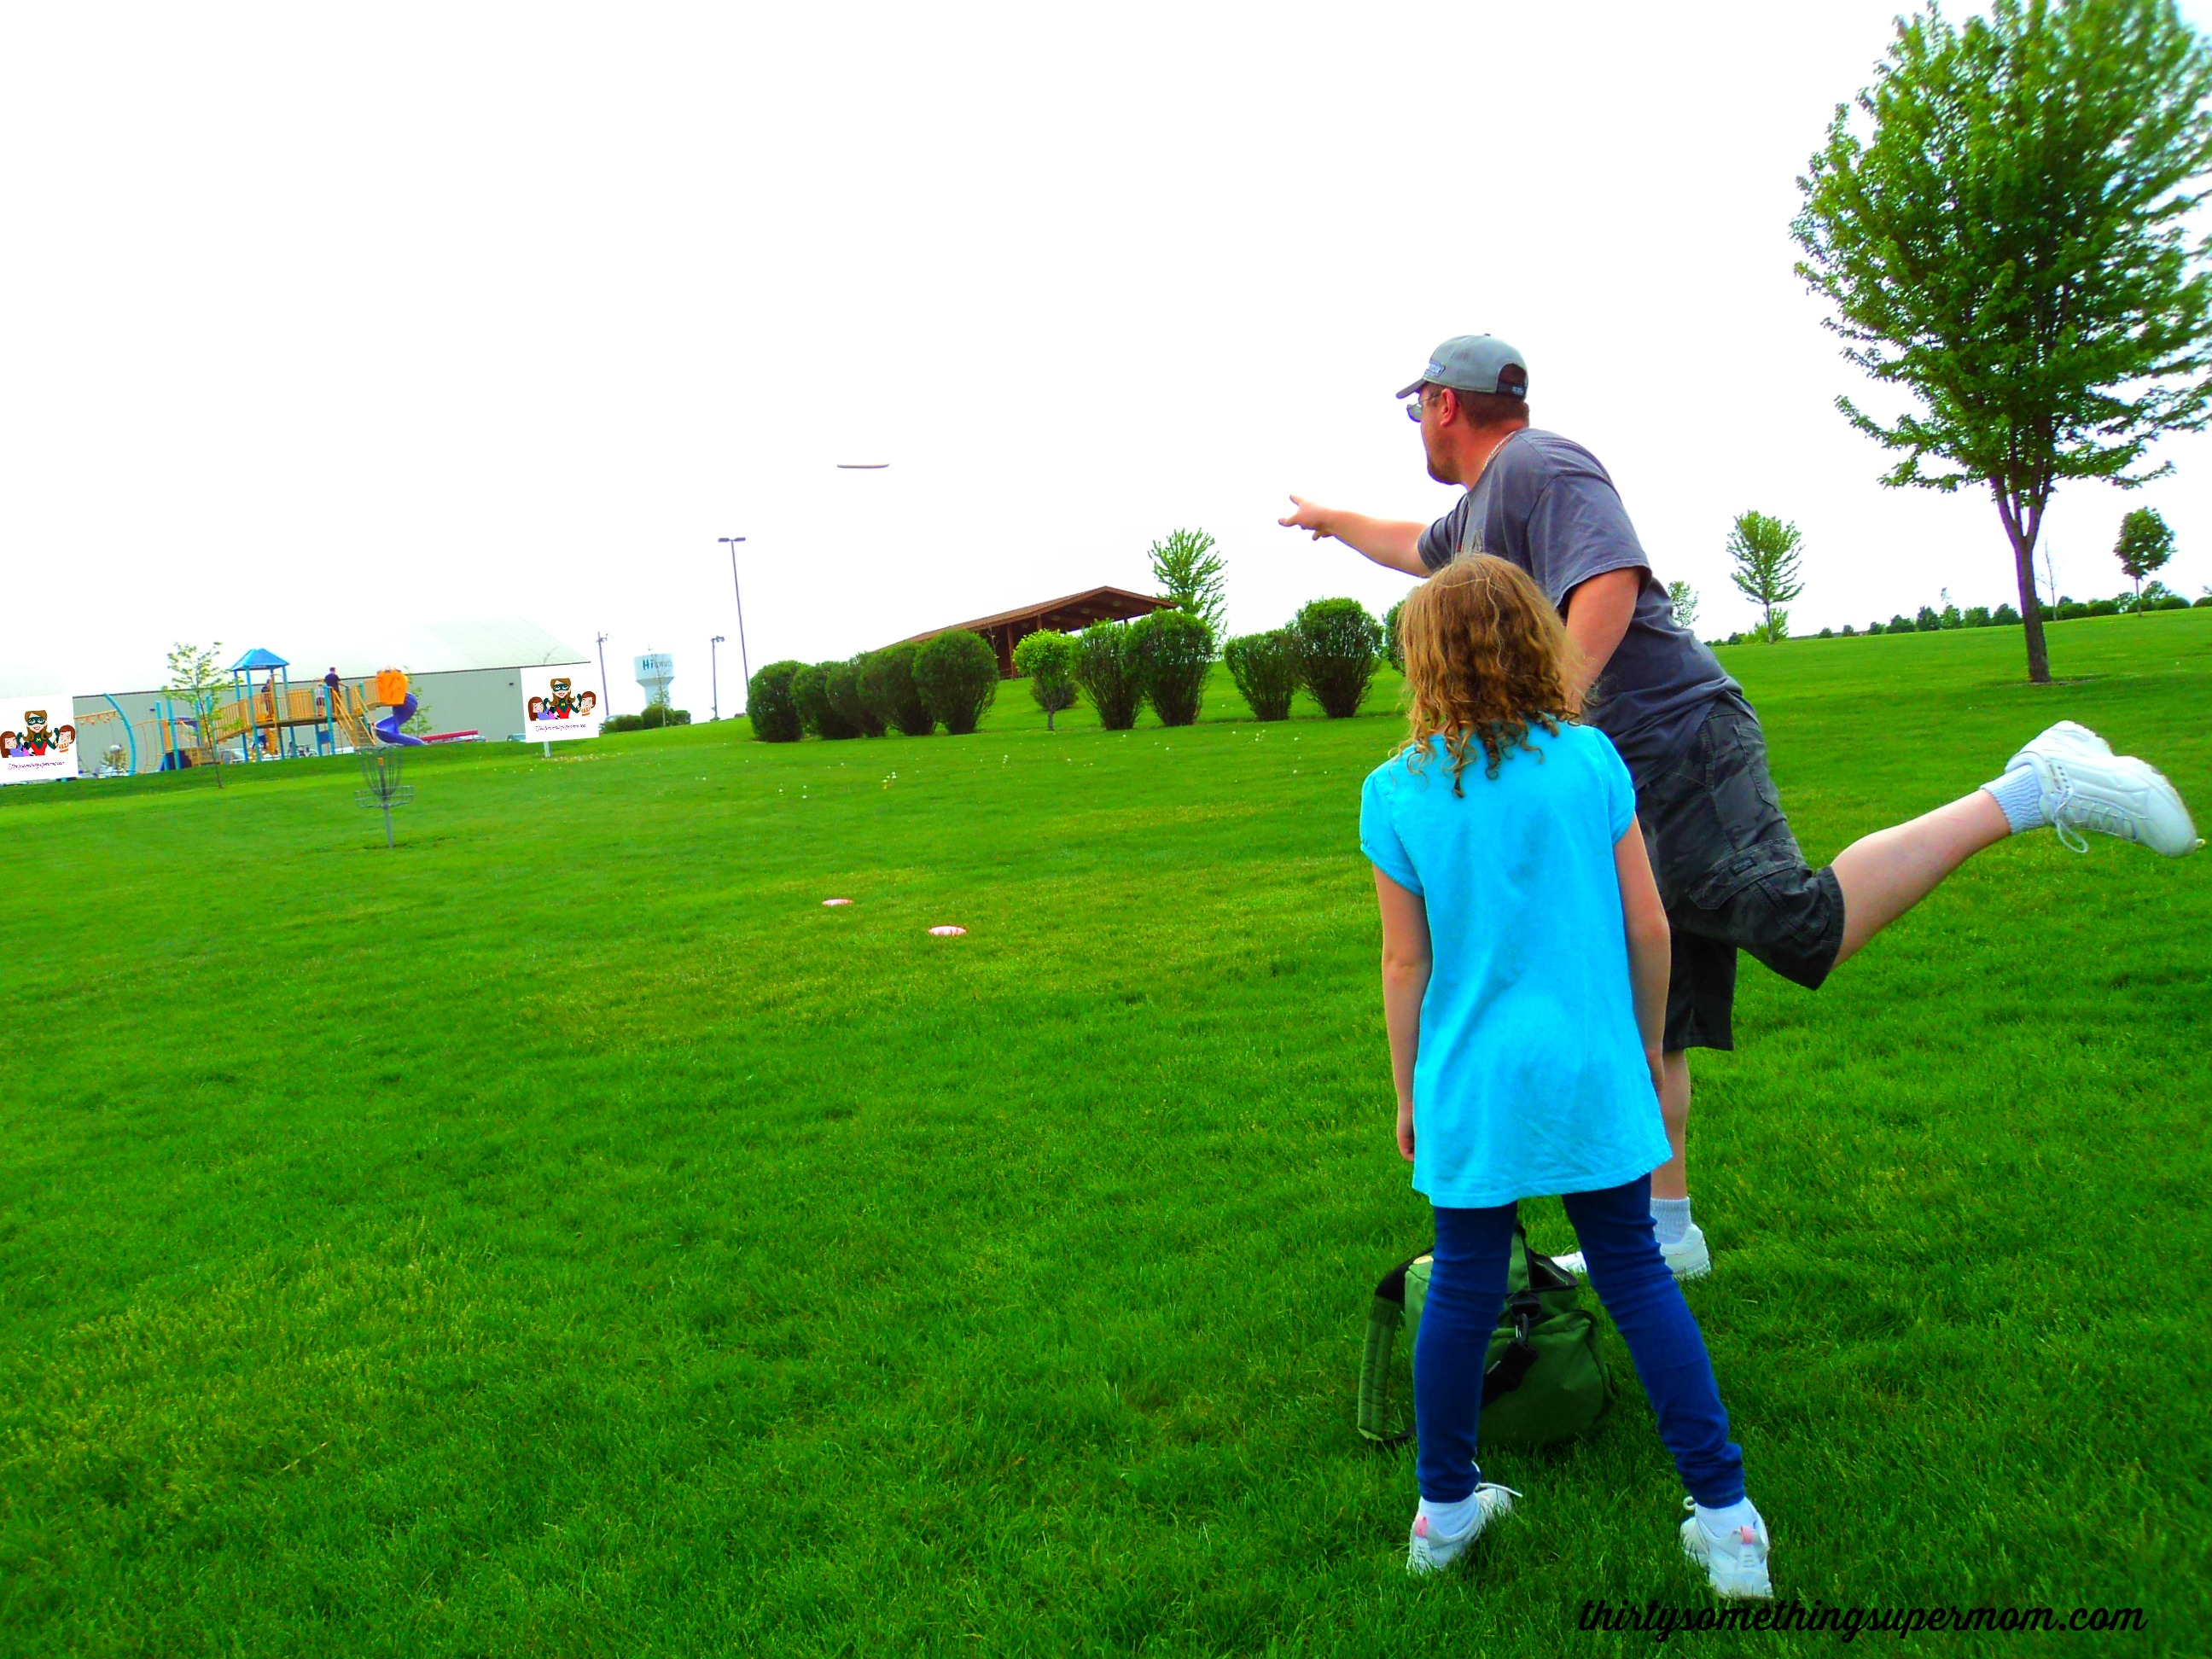 Fun Outdoor Family Activity: Disc Golf